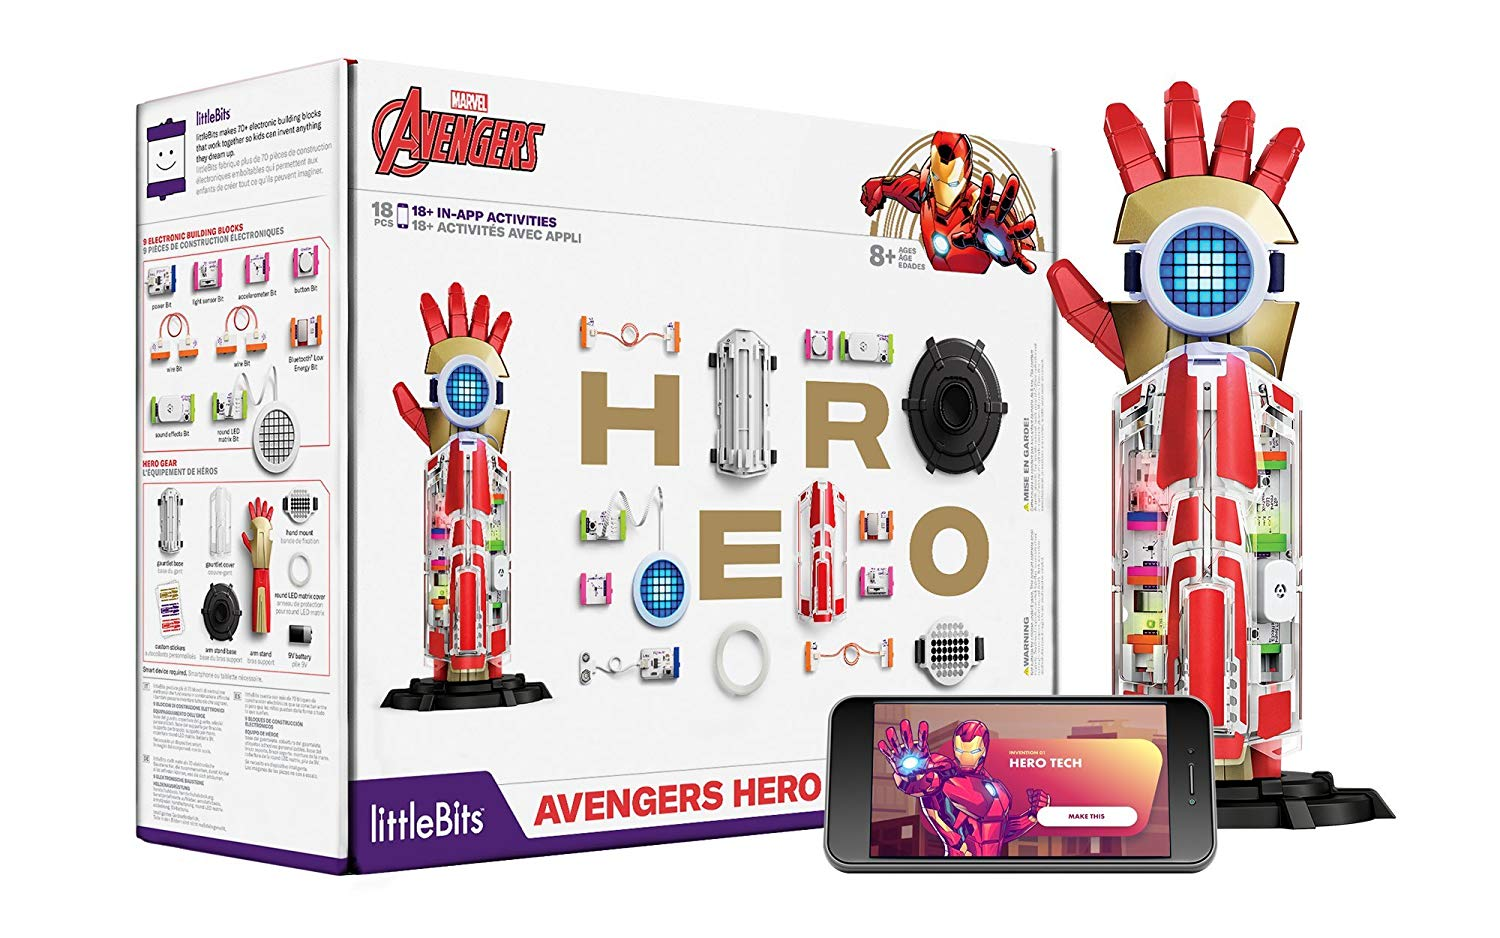 Cool gifts for tween boys (and girls): littleBits Marvel Avengers Hero Inventor Kit